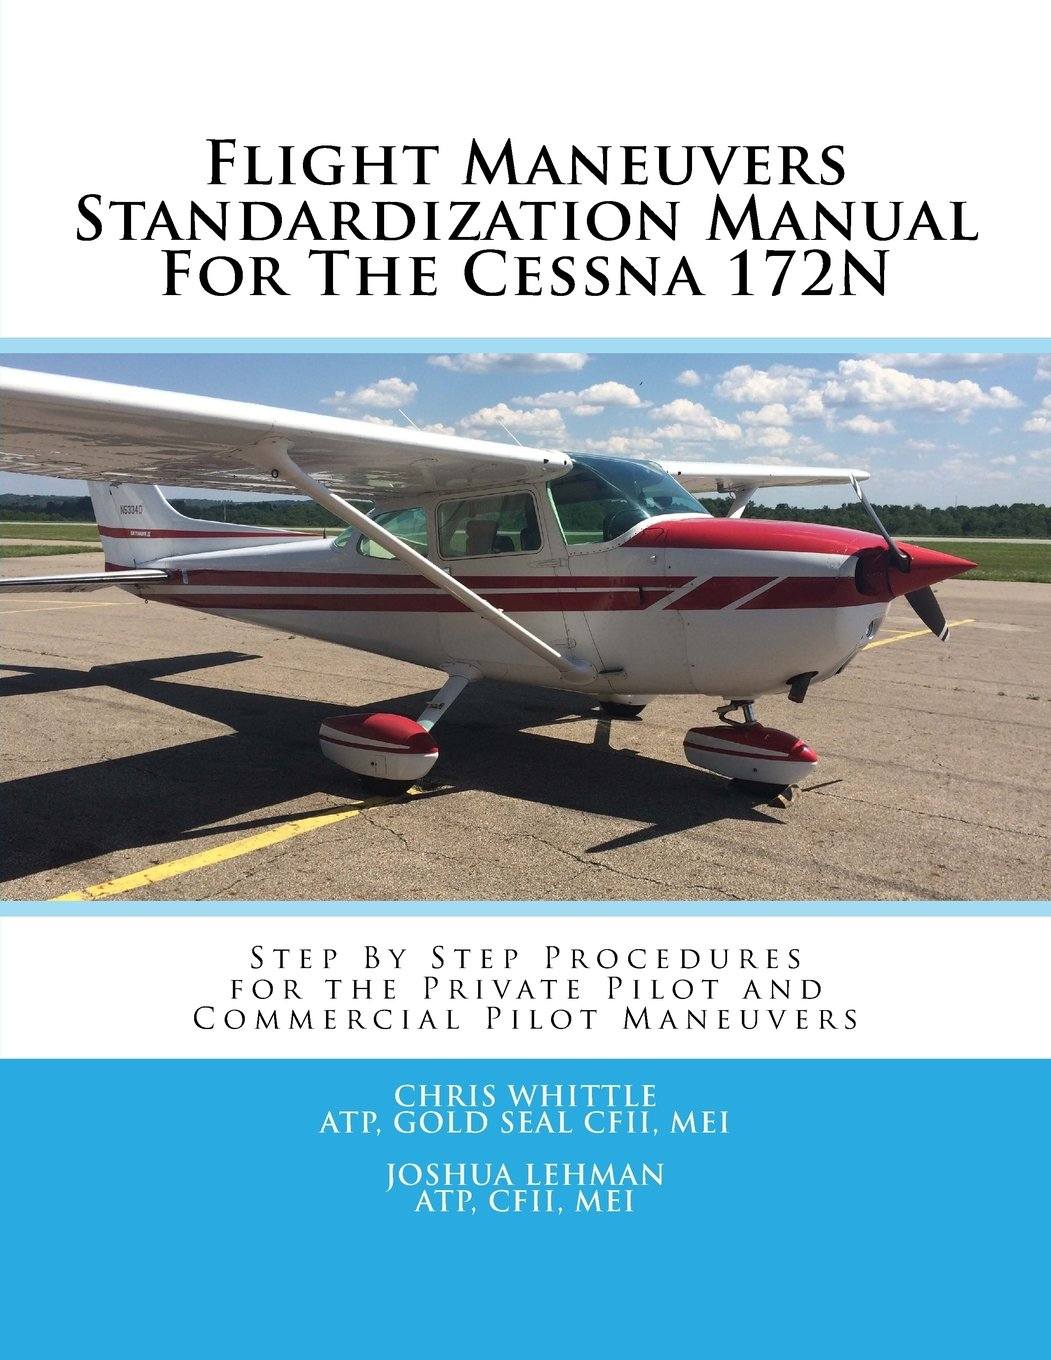 Flight Maneuvers Standardization Manual For The Cessna 172N